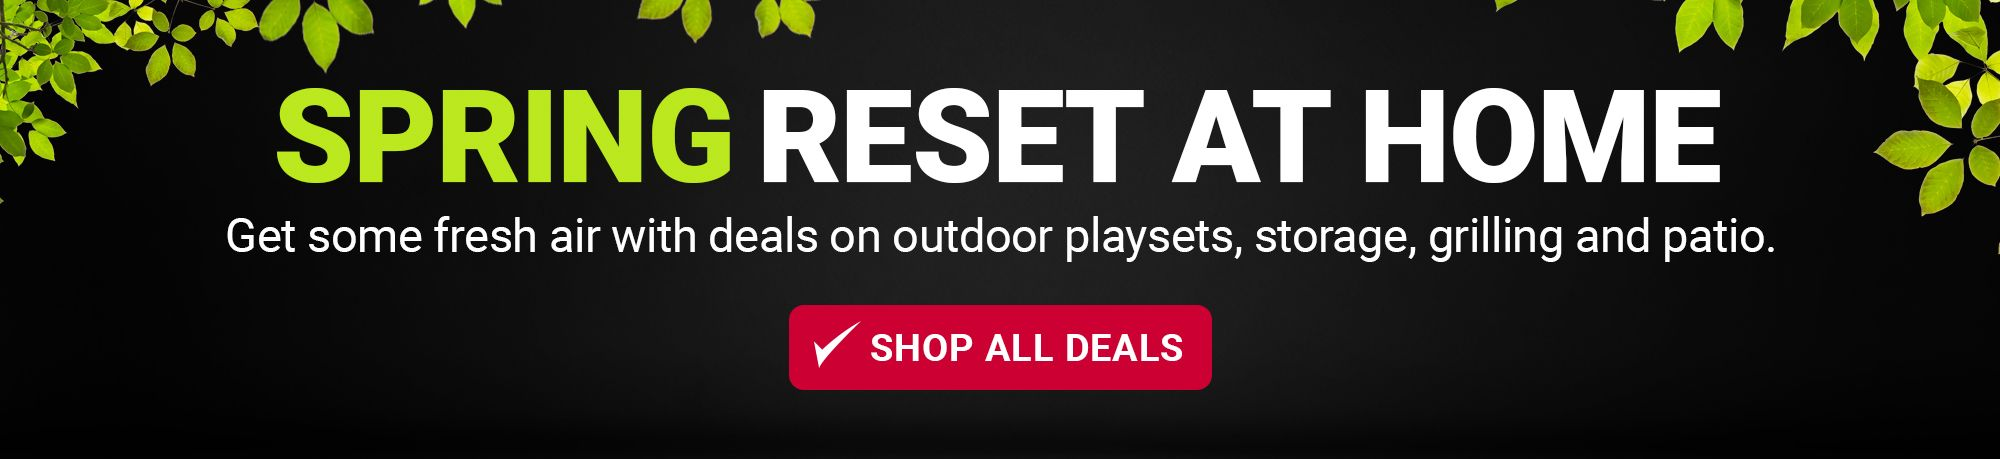 Spring reset at home. Get some fresh air with deals on outdoor playsets, storage, grilling and patio. Shop all deals.